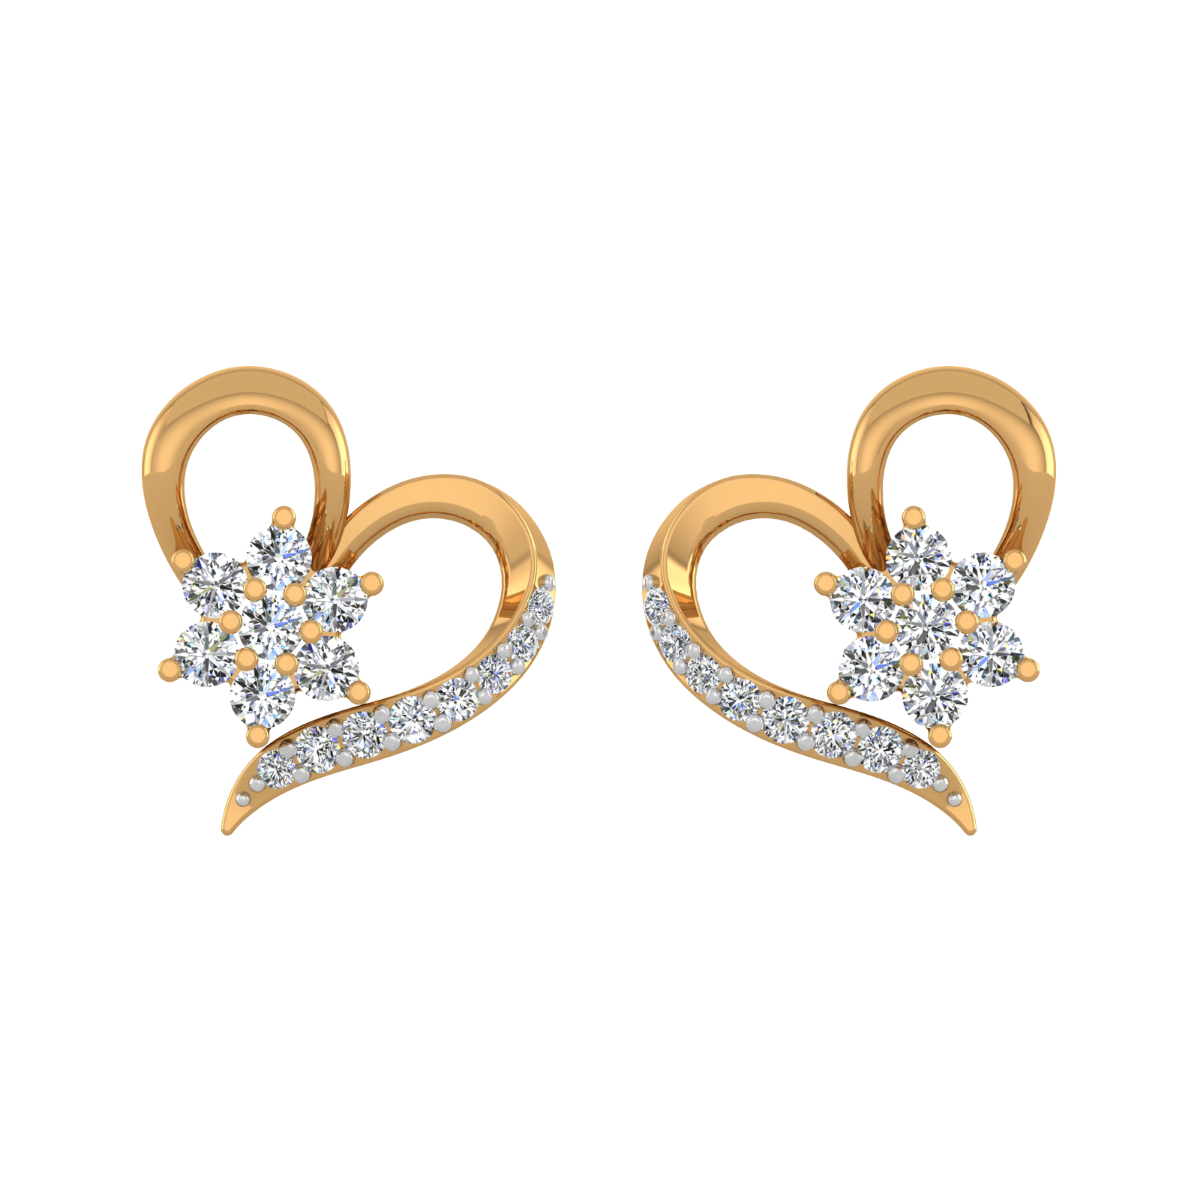 Floral Aspect Gold Diamond Stud Earrings